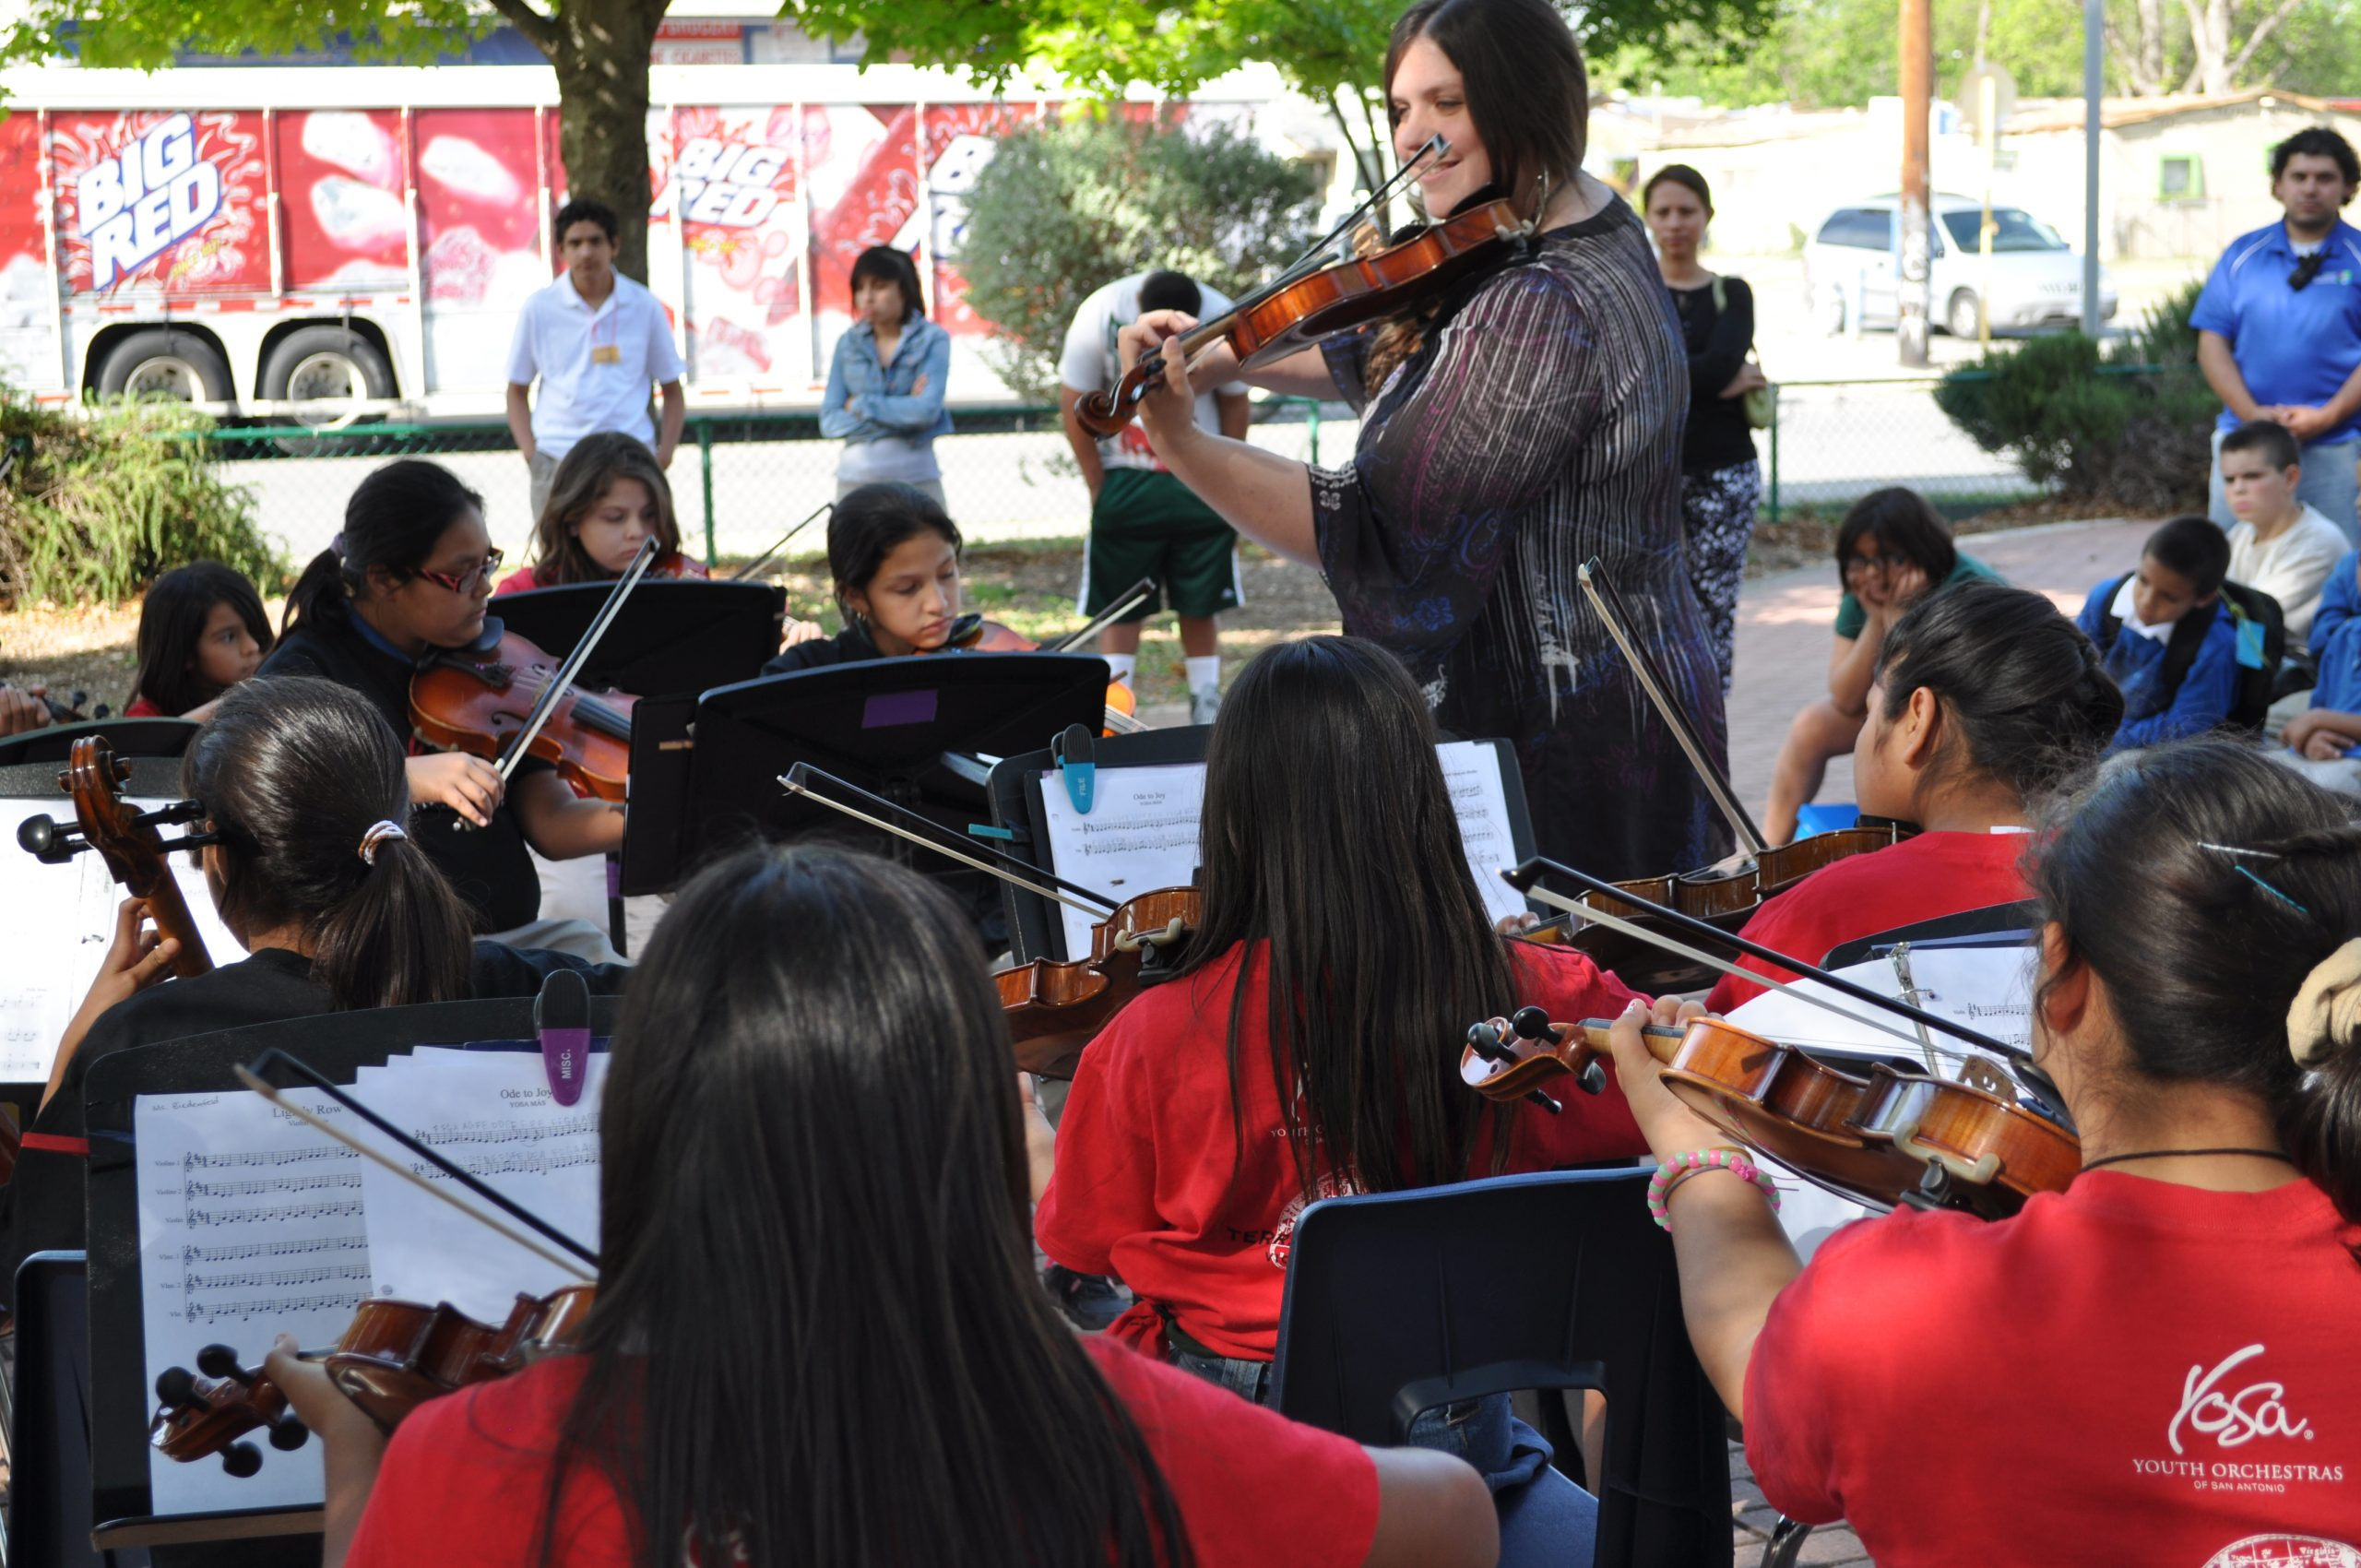 Maggie Raveneau, YOSA MÁS teaching artist, leads a miniature symphony of about 20 students. Photo by Iris Dimmick.